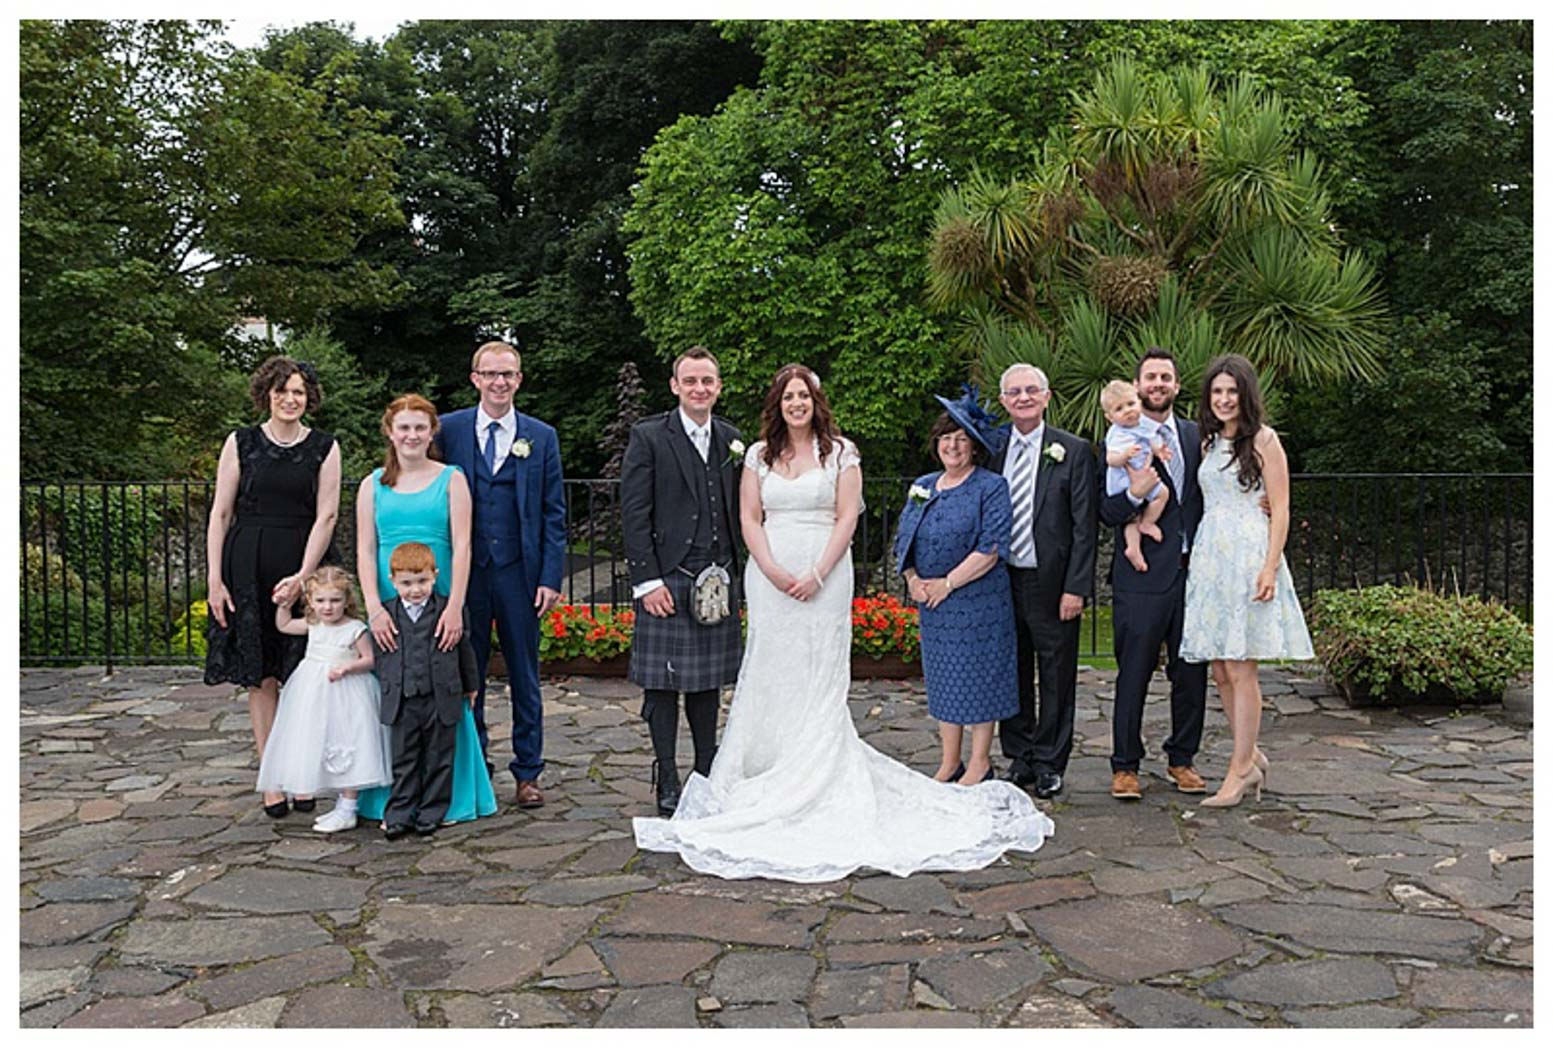 Ballygally Castle Wedding Photographs by Ricky Parker Photography 41